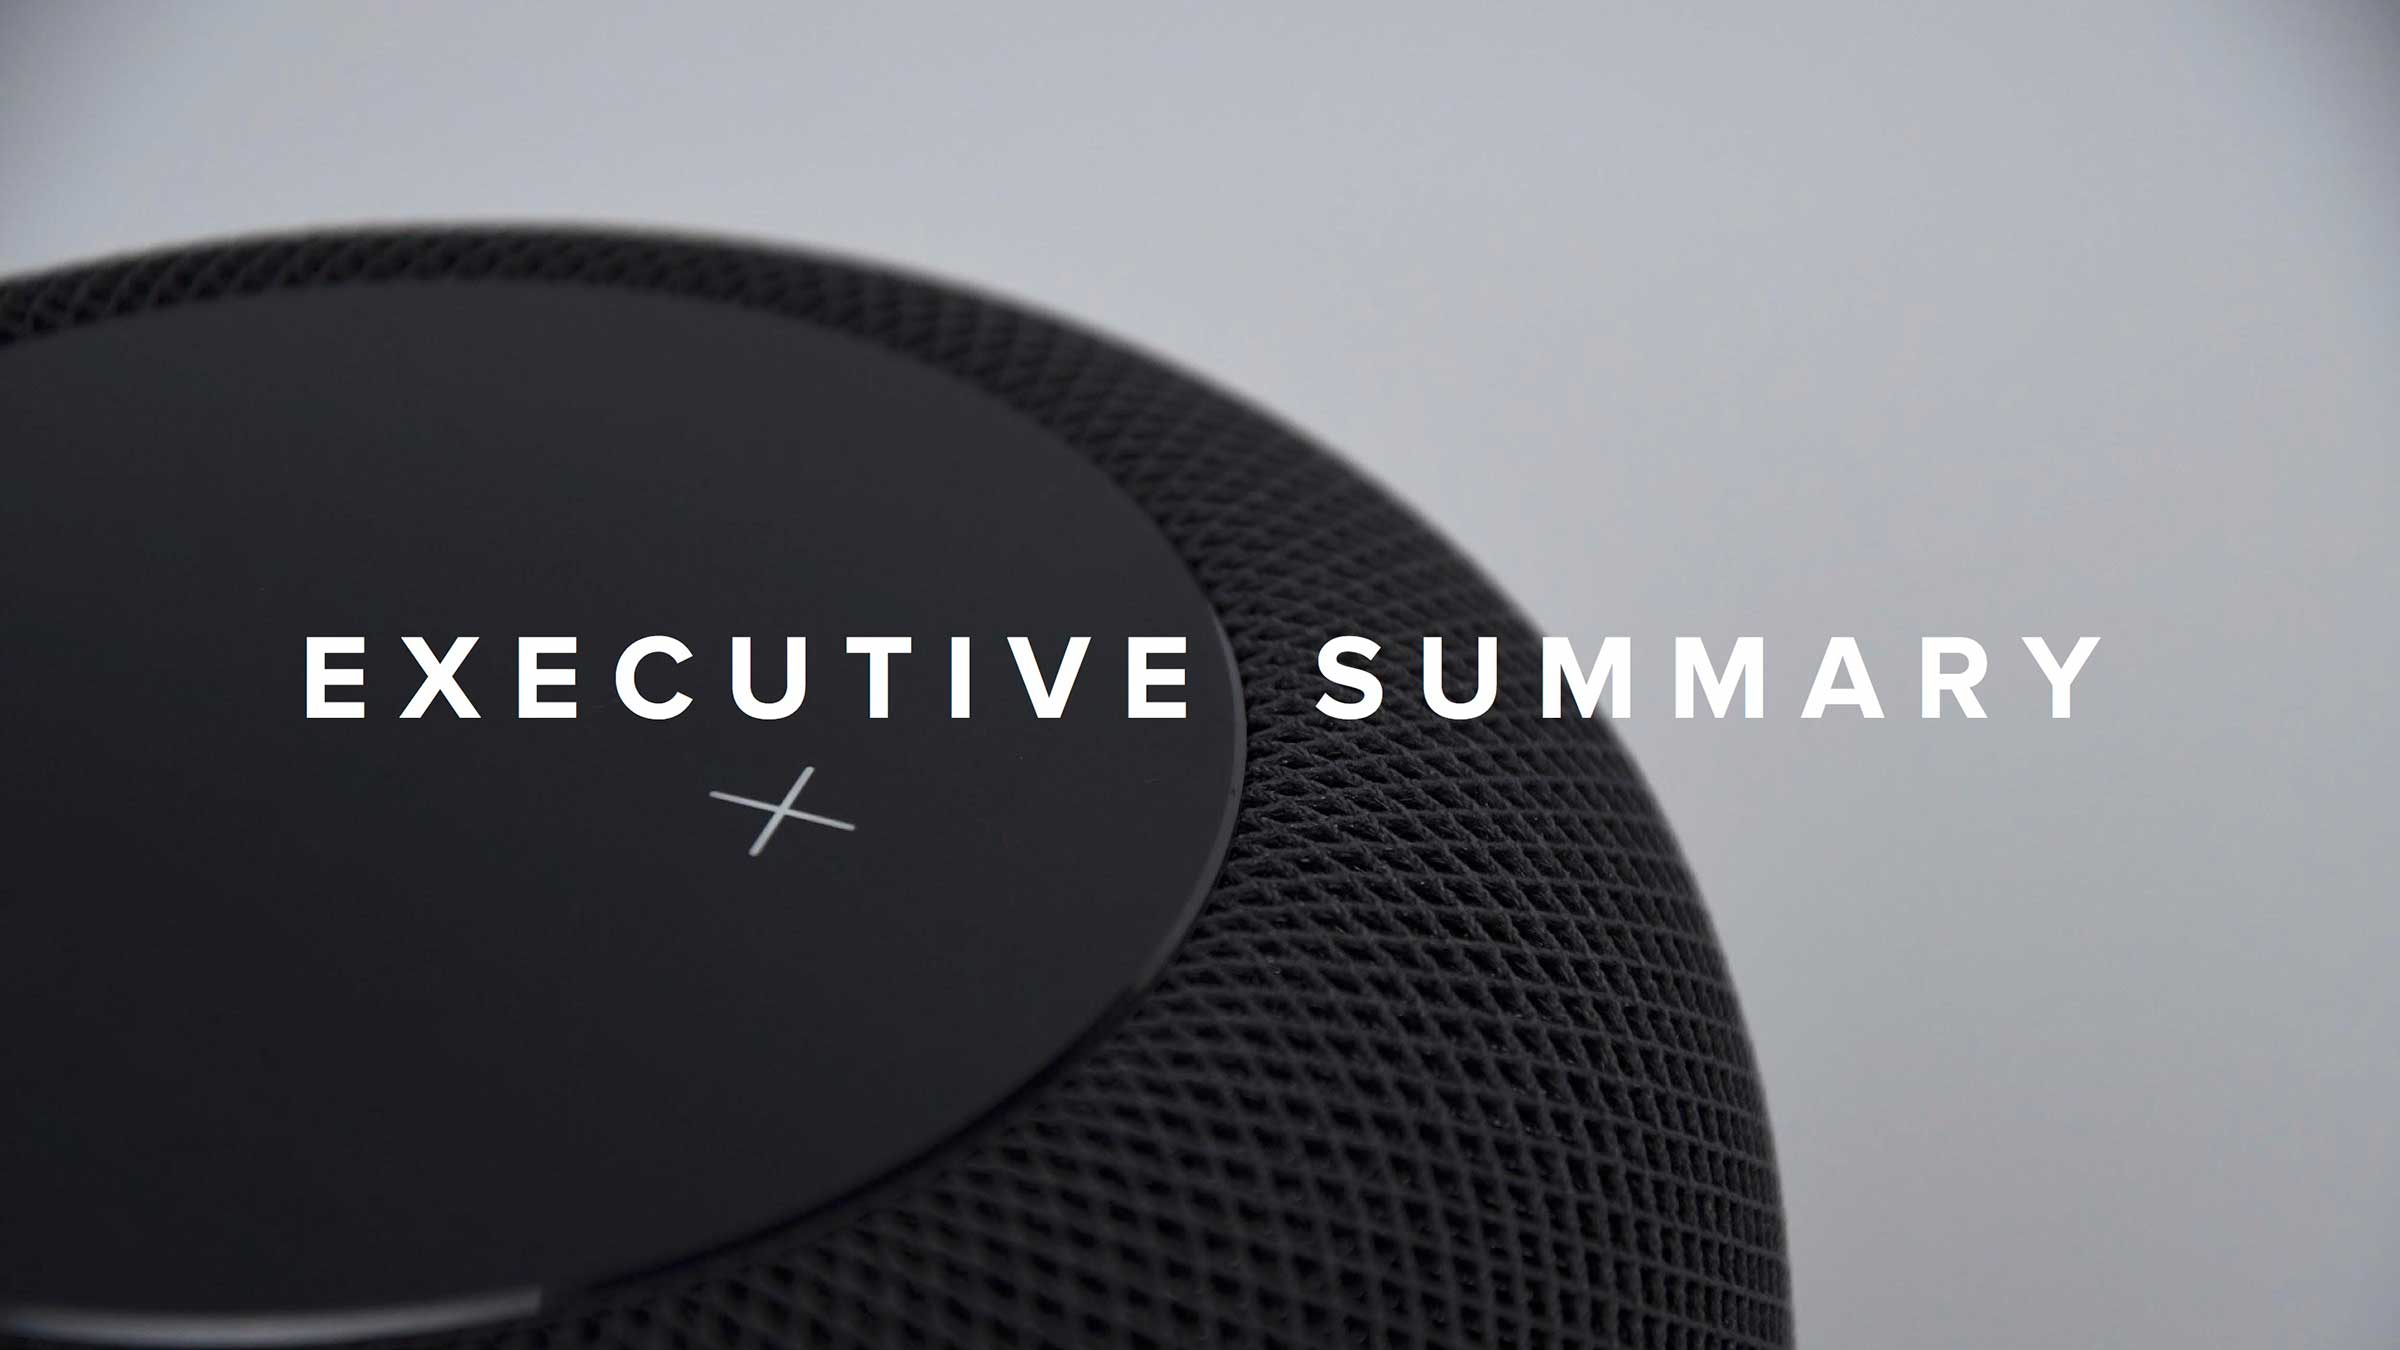 """Executive Summary"" atop a smart speaker."